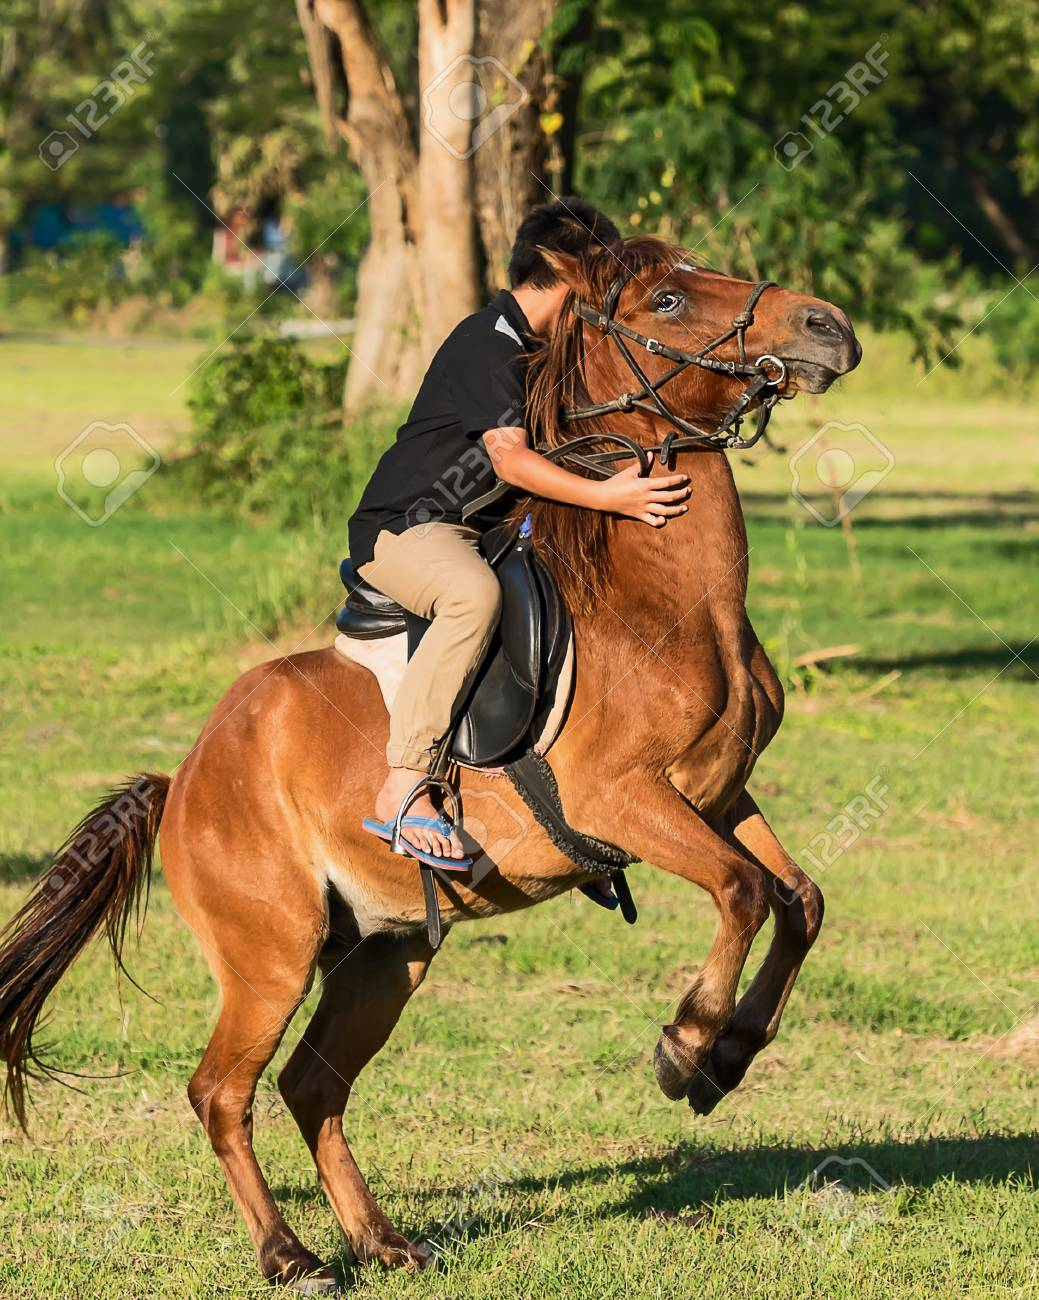 Boy Rider Chestnut Horse Jumping In The Meadow Stock Photo Picture And Royalty Free Image Image 94119095